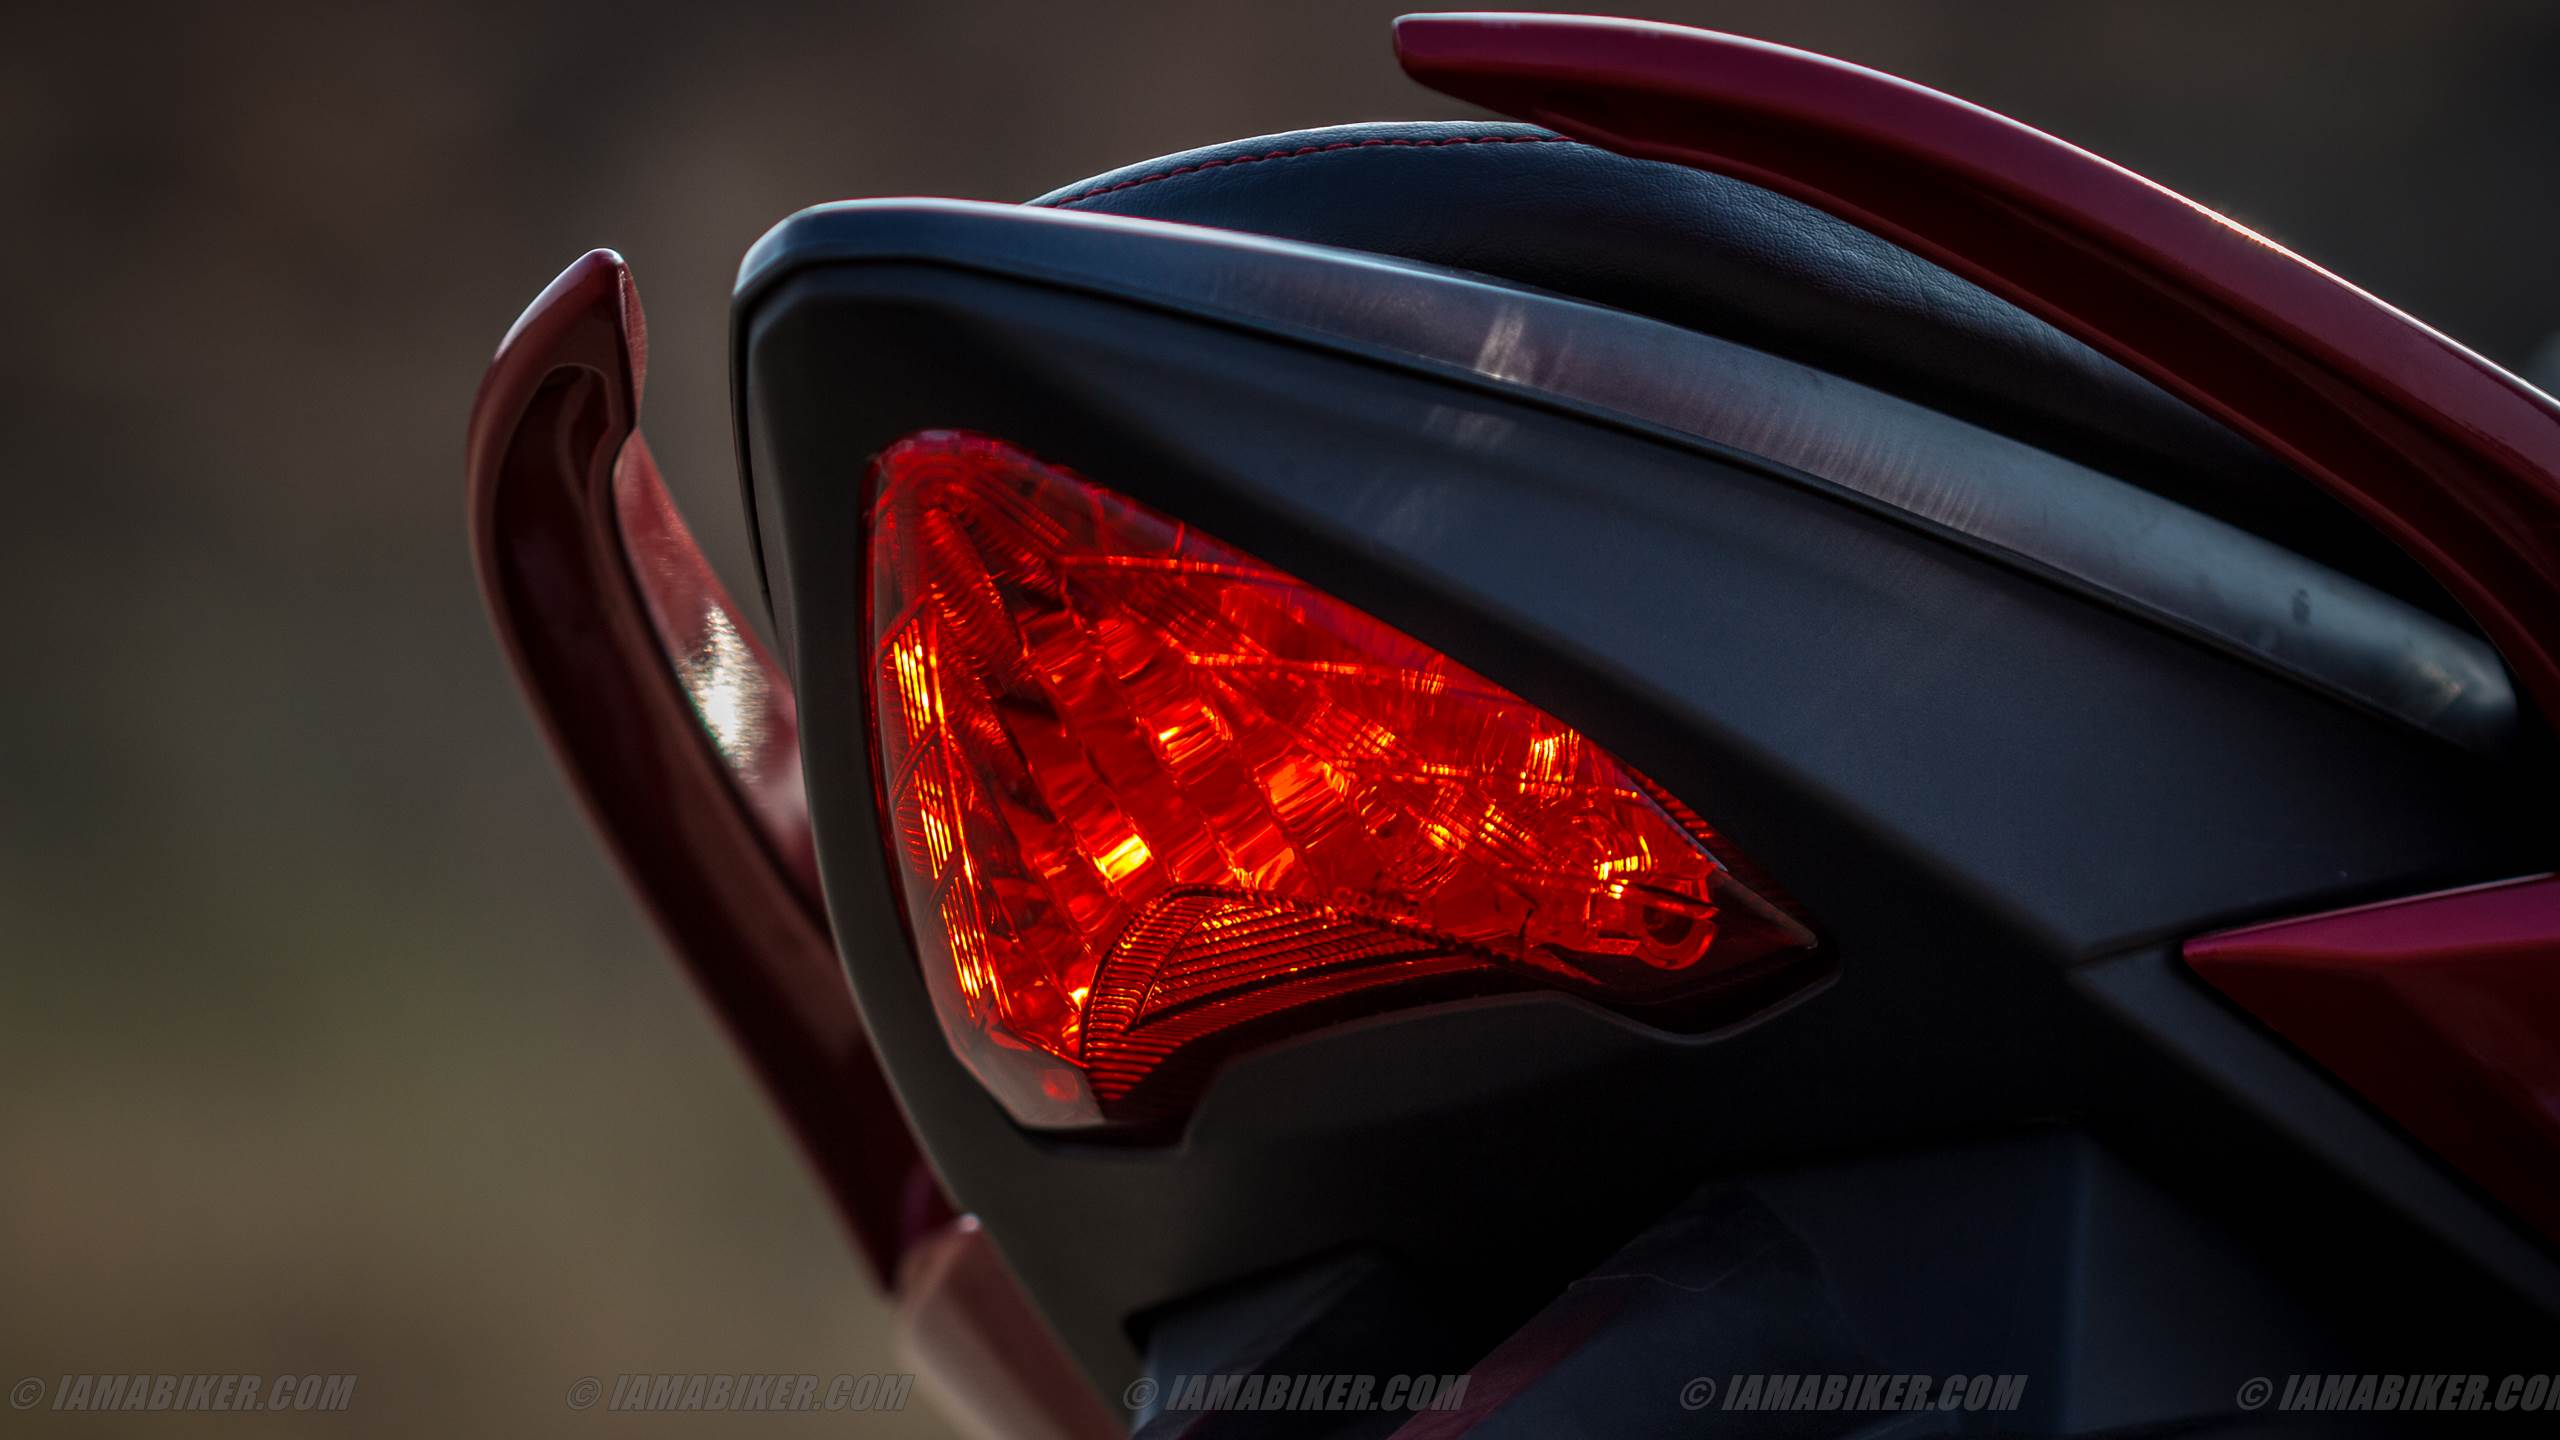 suzuki gixxer 155 LED tail light